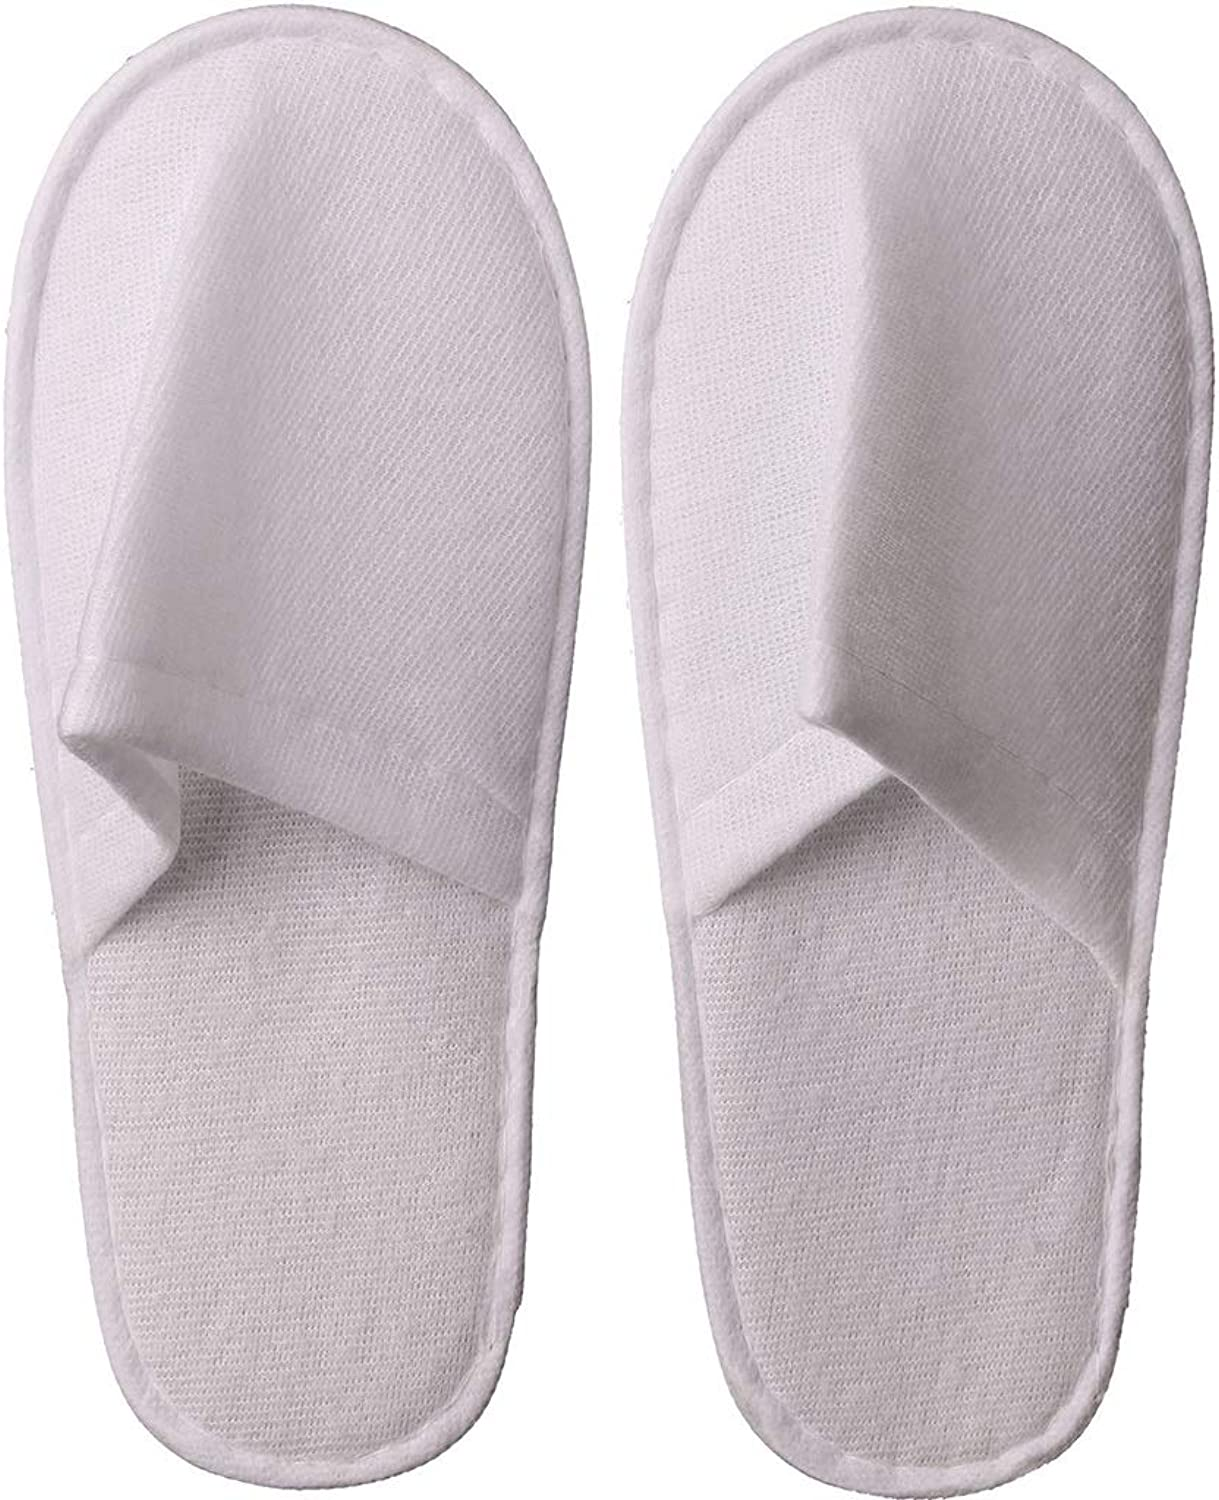 30  50  100Pairs of Spa for Män and and and kvinnor -- Great for Home, Hotel, Spa, Guest, Nail SalonCotton sammet Closed Toe Unisex Universal Storlek vit Slippers (Edition  100 Pairs)  utlopp